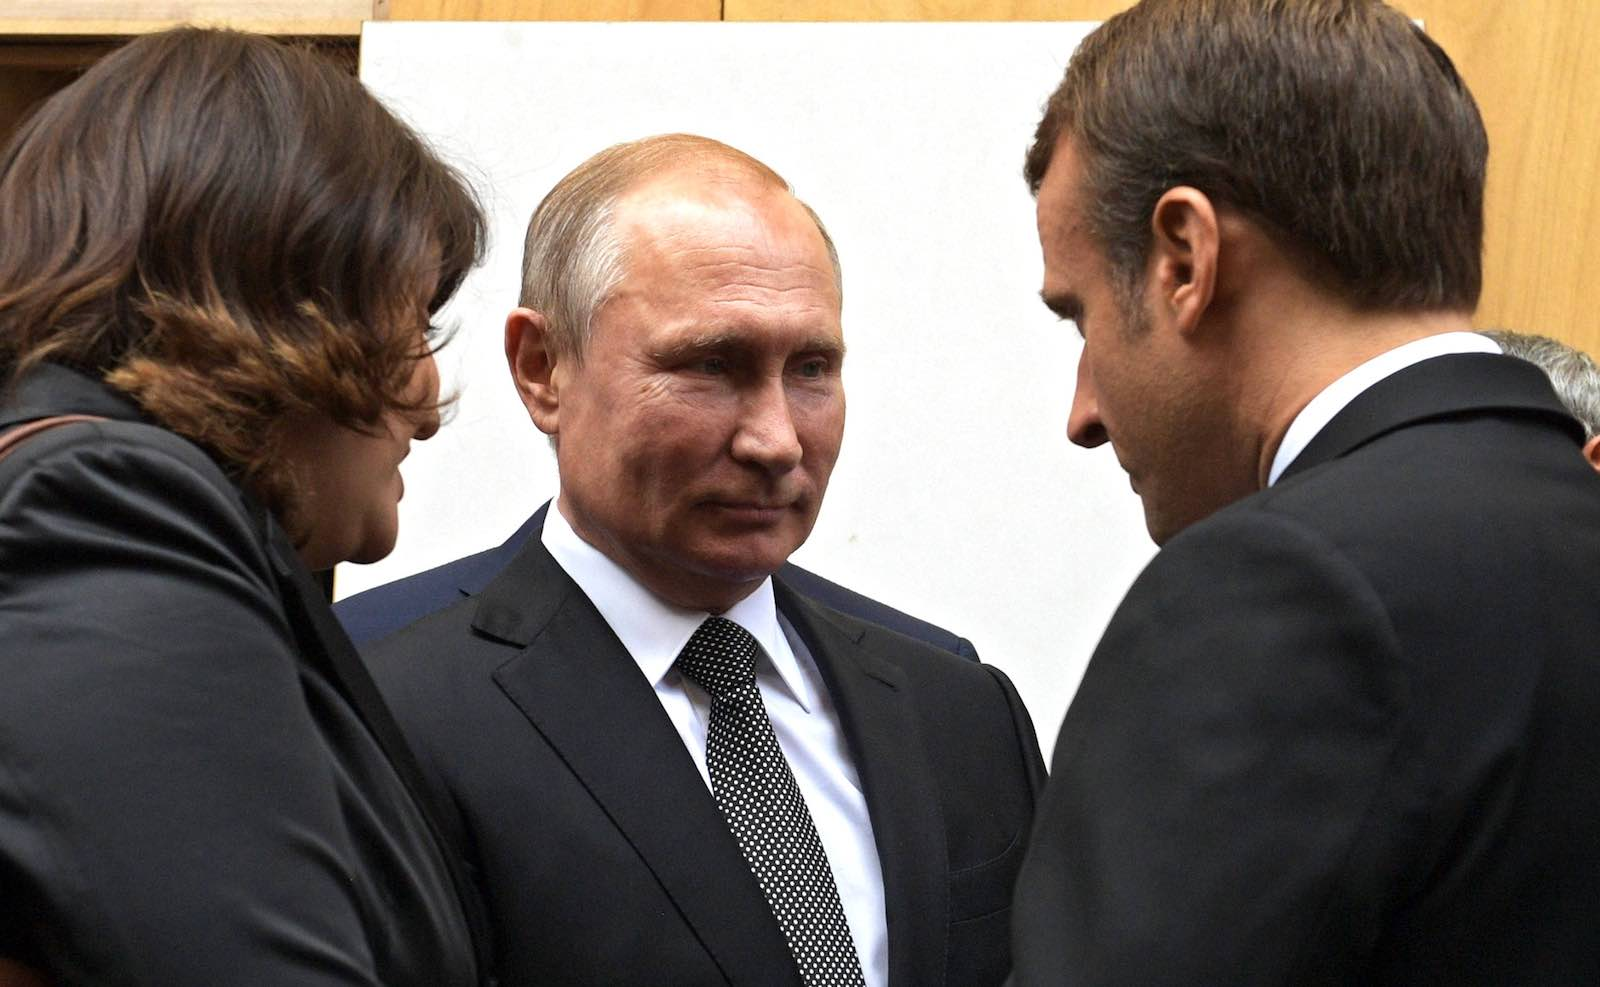 Russian President Vladimir Putin with French President Emmanuel Macron at the memorial service for former French President Jacques Chirac, 30 September 2019 (Photo: kremlin.ru)